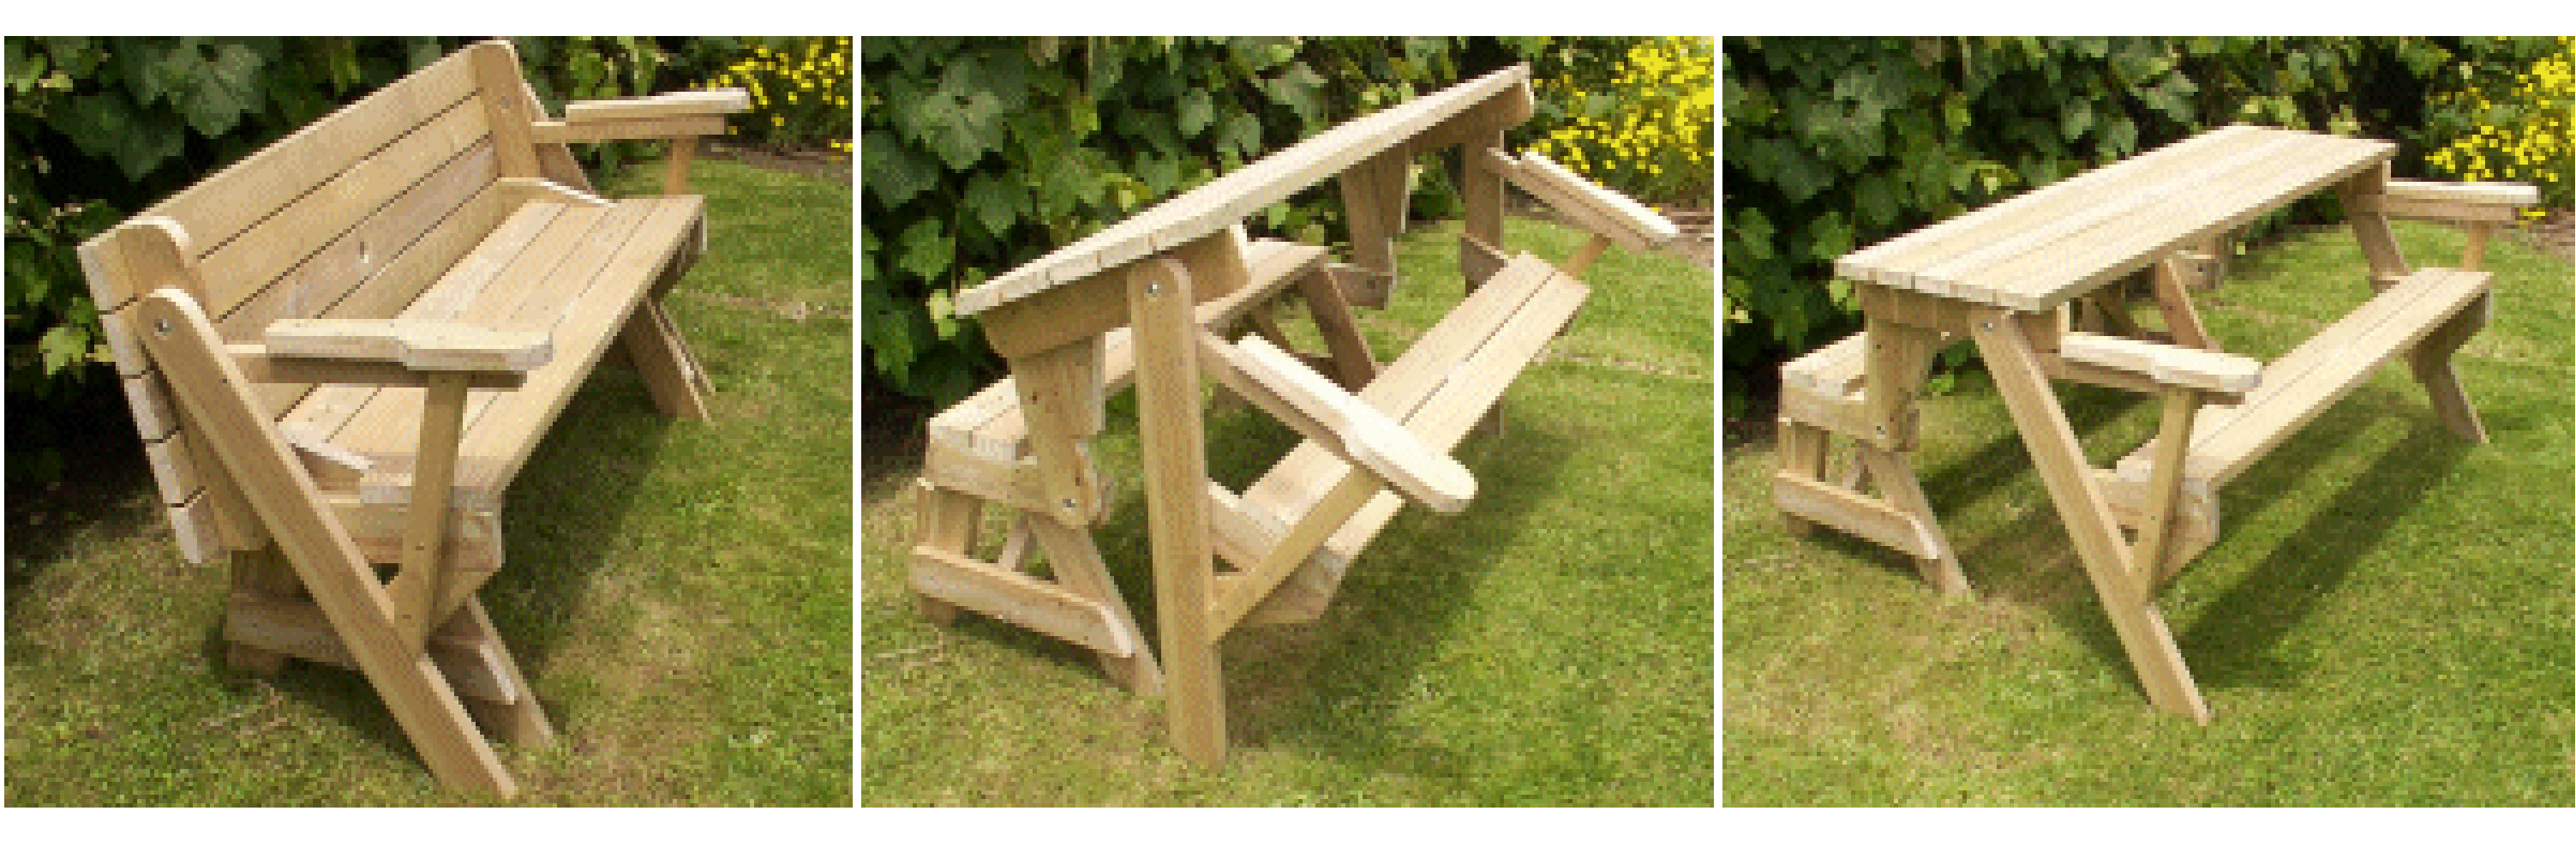 Detailed plans for a bench which turns into a picnic table